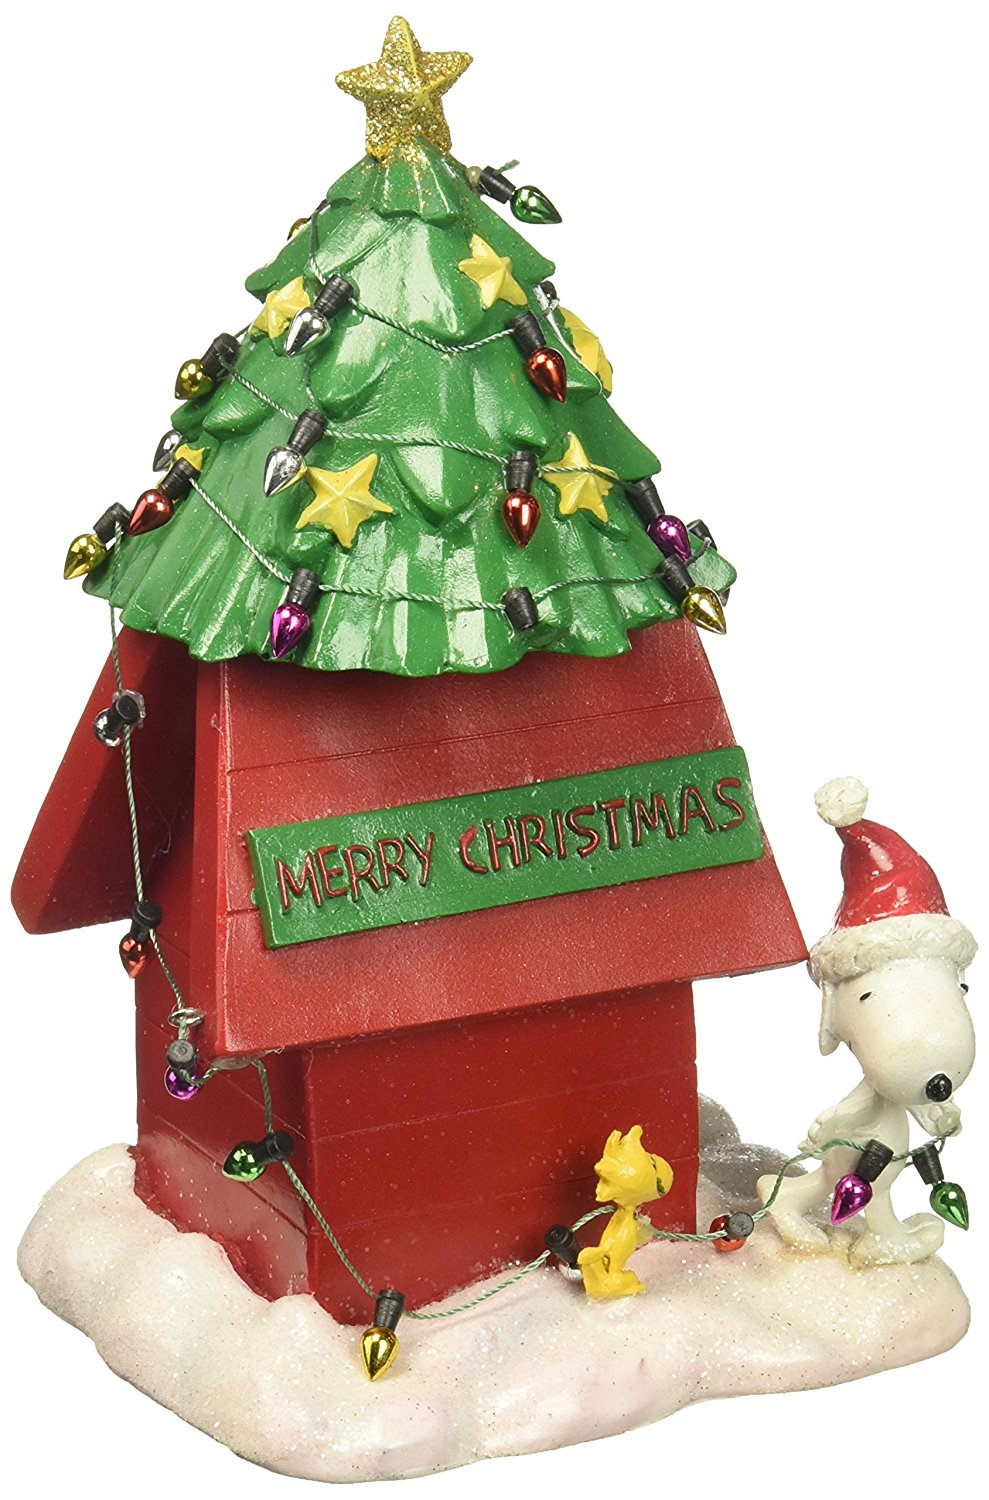 department 56 4058130 peanuts christmas dog house figurine - Department 56 Peanuts Christmas